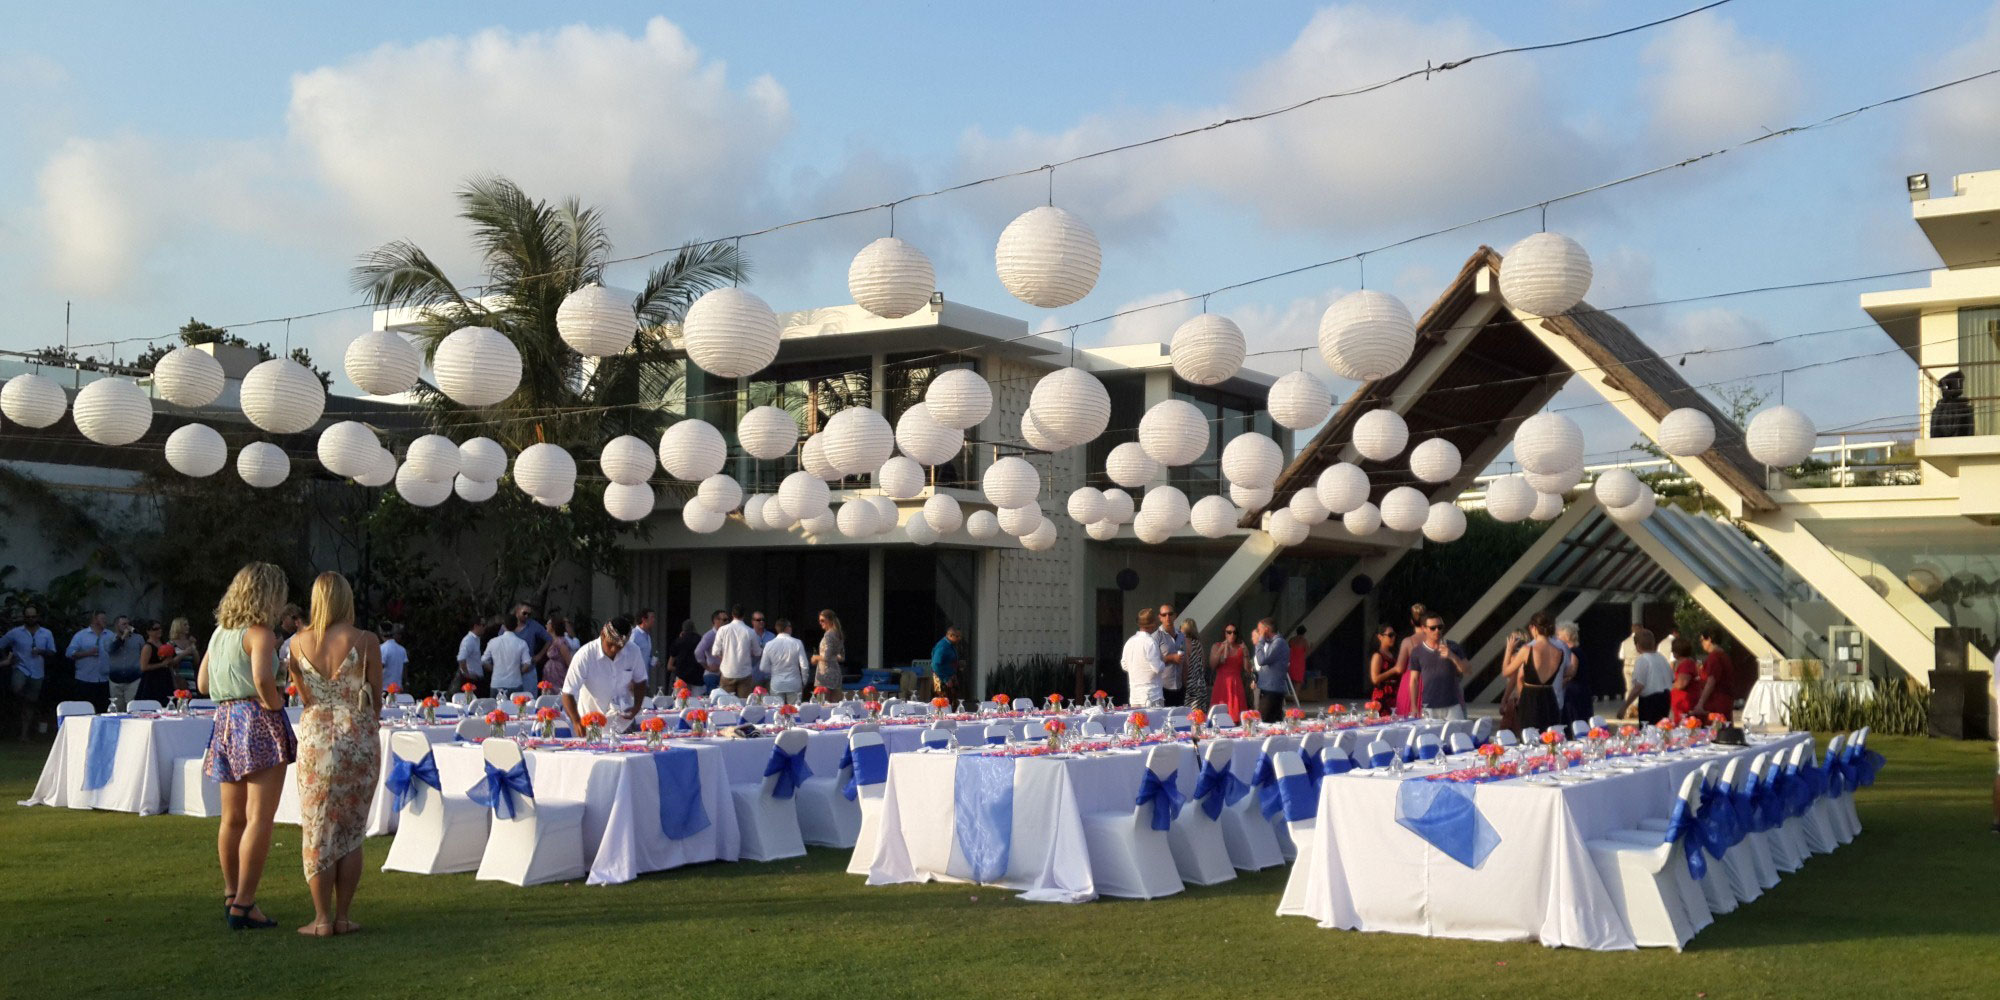 bali wedding honeymoon, bali wedding planner, wedding reception in bali, wedding in bali, wedding ceremony in bali